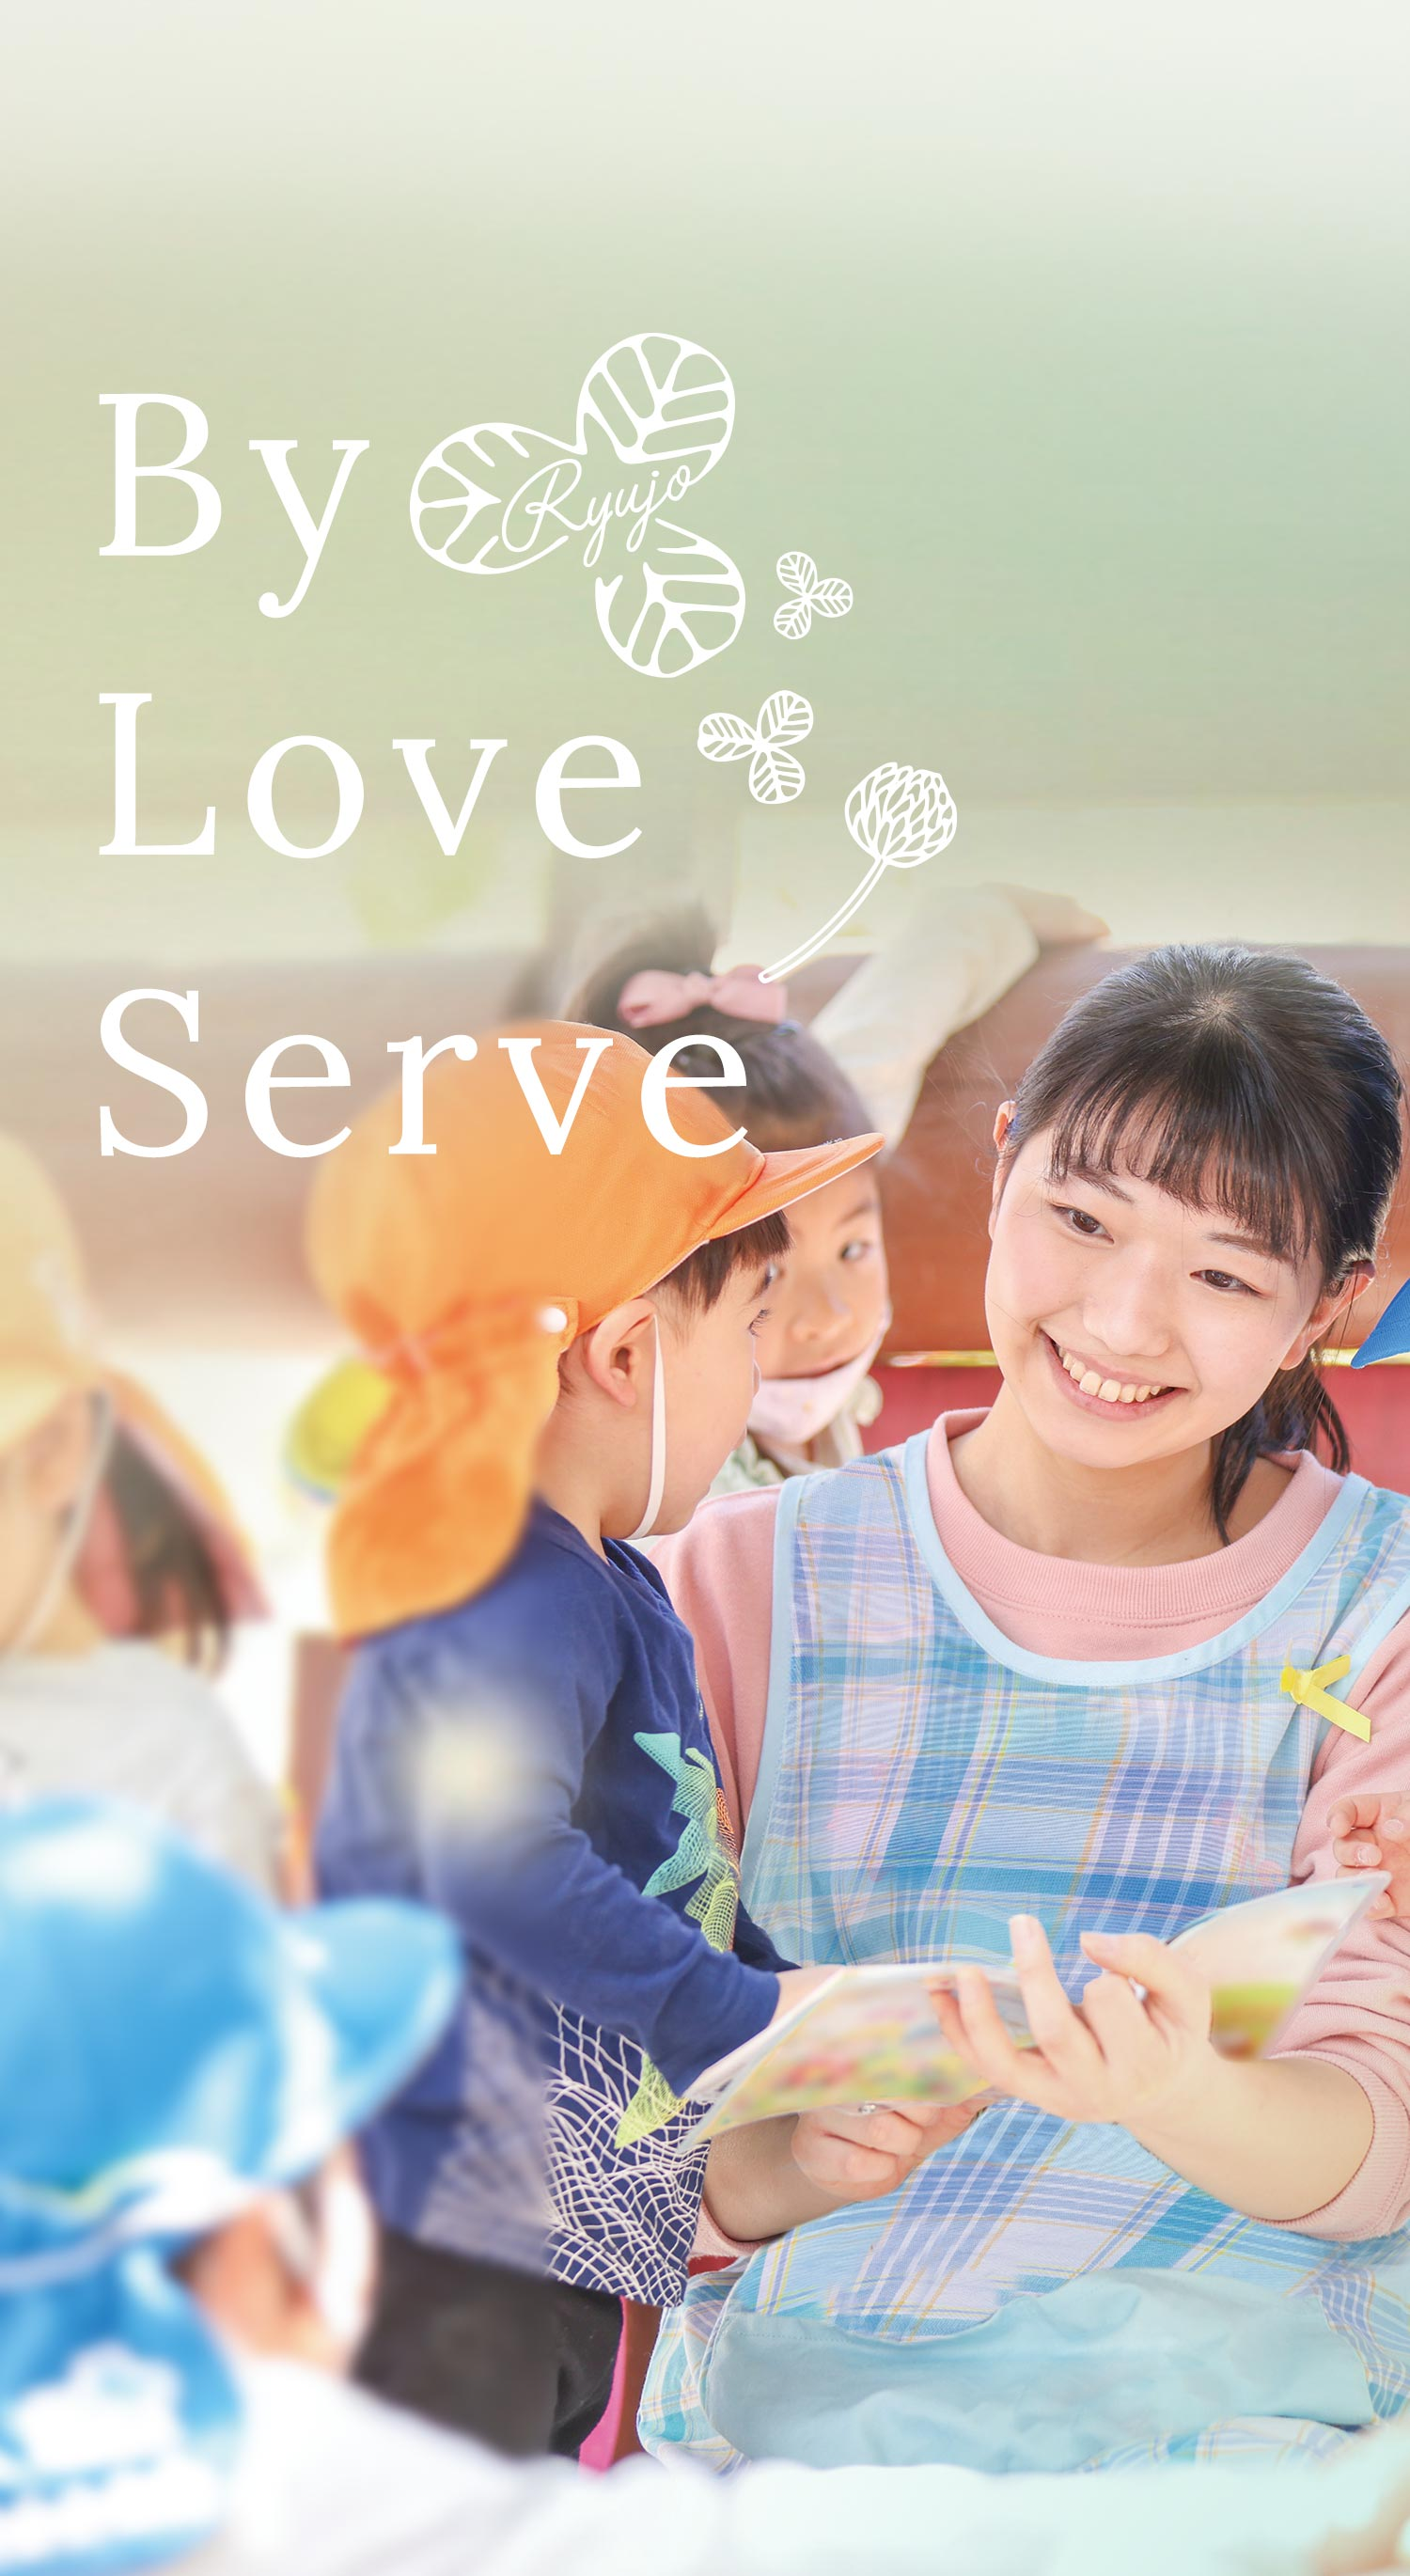 By Love Serve